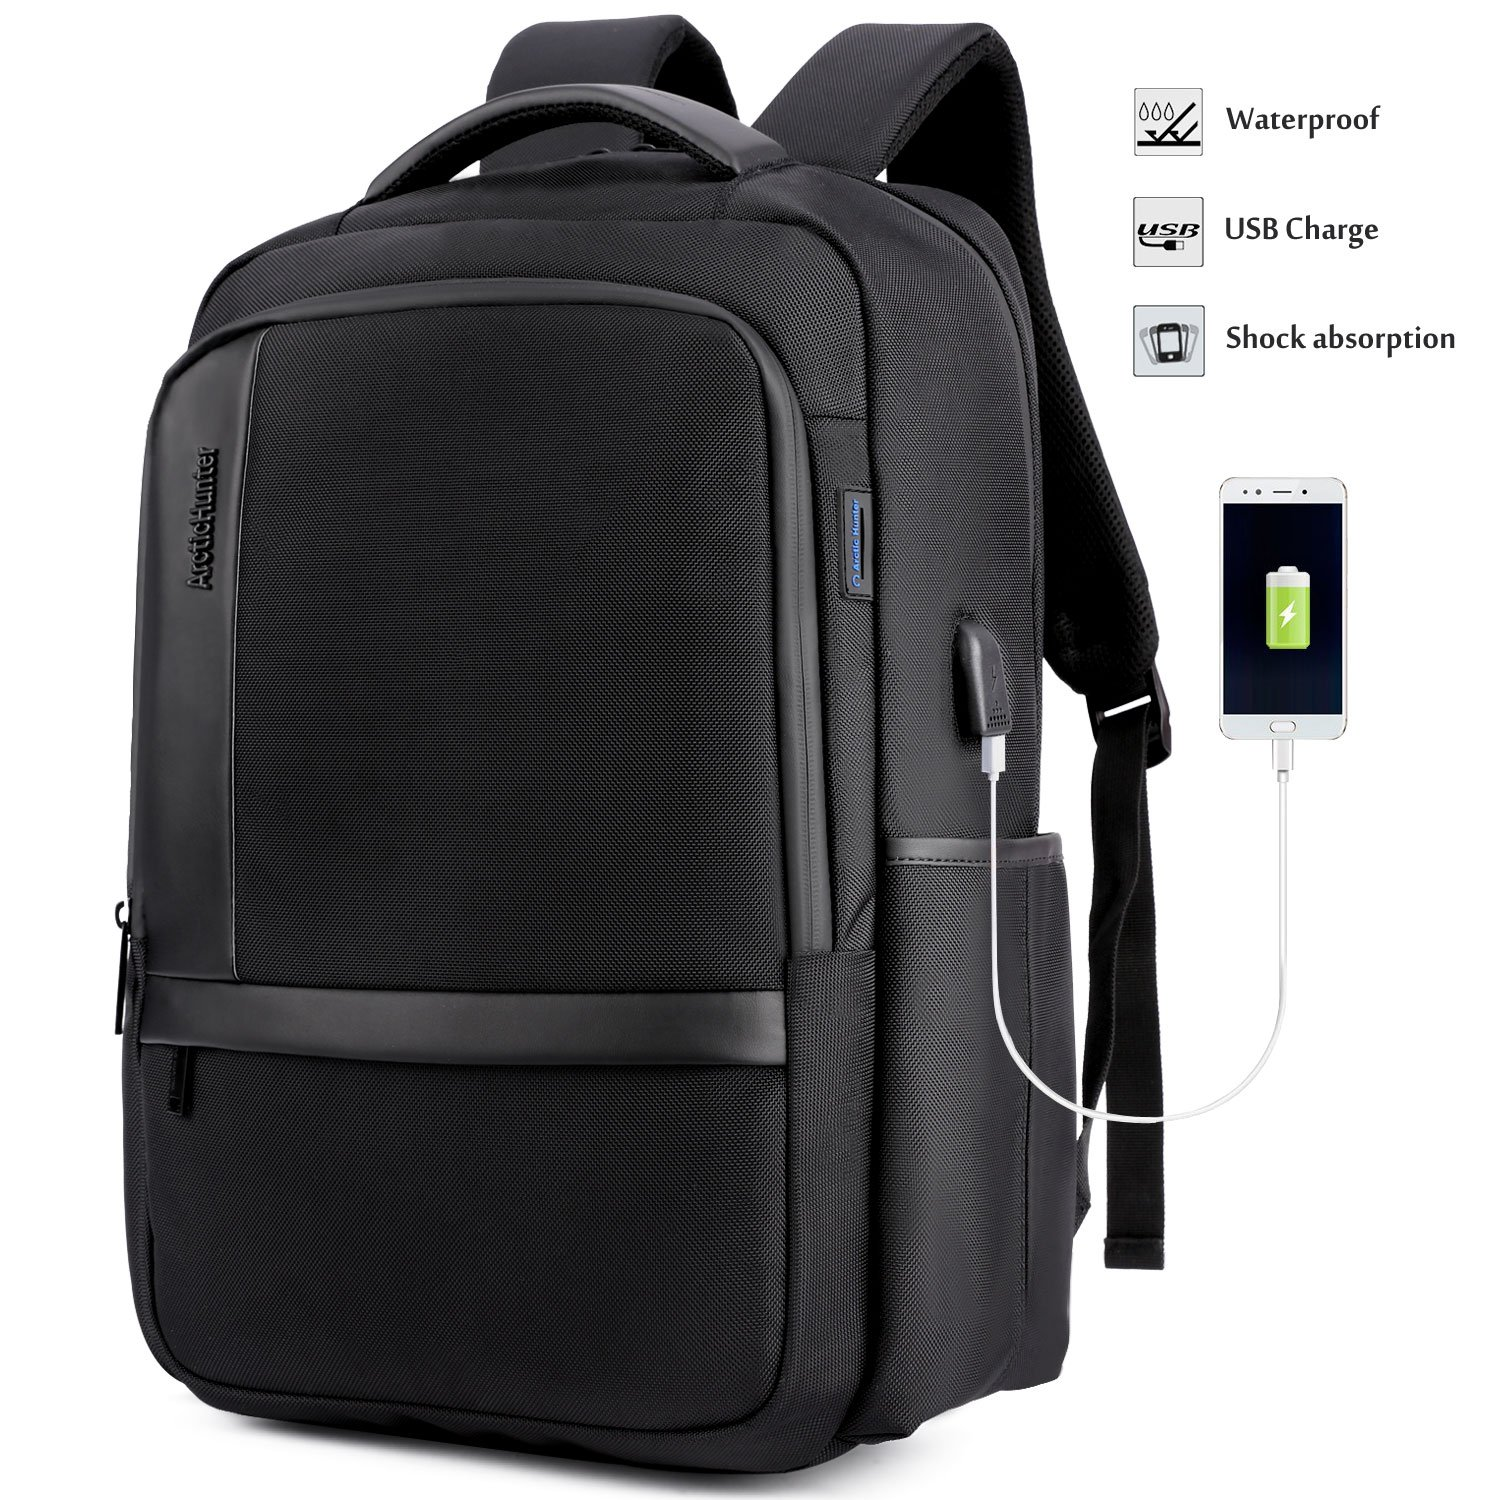 Laptop Backpack High School BookBag for Teen Boys Girls with USB Charging Port Business Travel Rucksack Middle College Student Daypack Computer Bag Fit 15.6''Tablet PC Waterproof(Black)